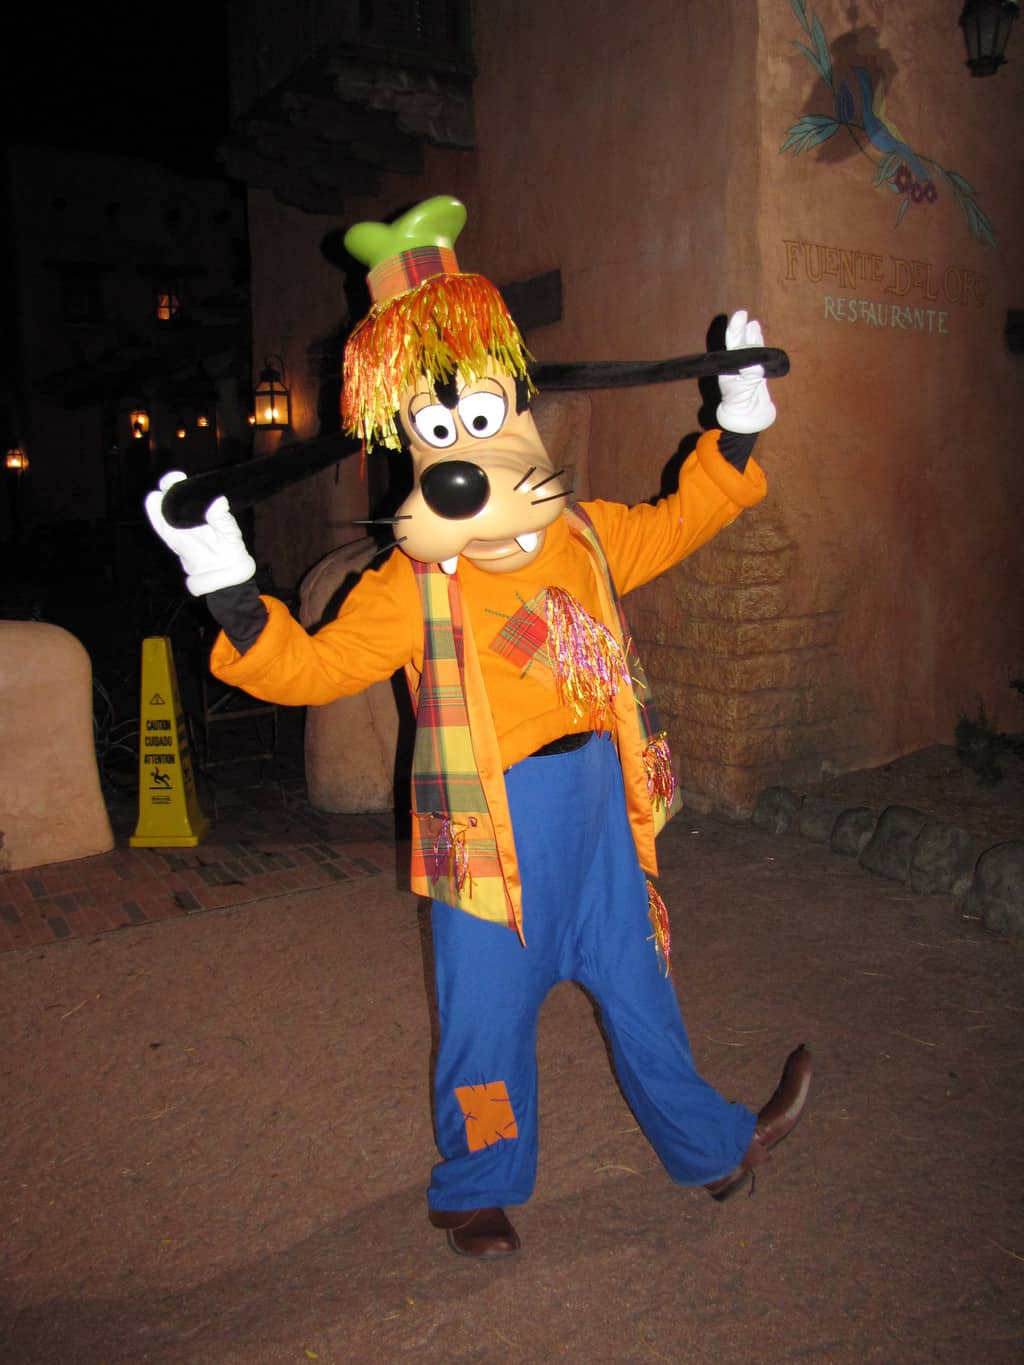 During the Mickey's Not So Scary Halloween Parties in 2009 Goofy wore his scarecrow outfit.